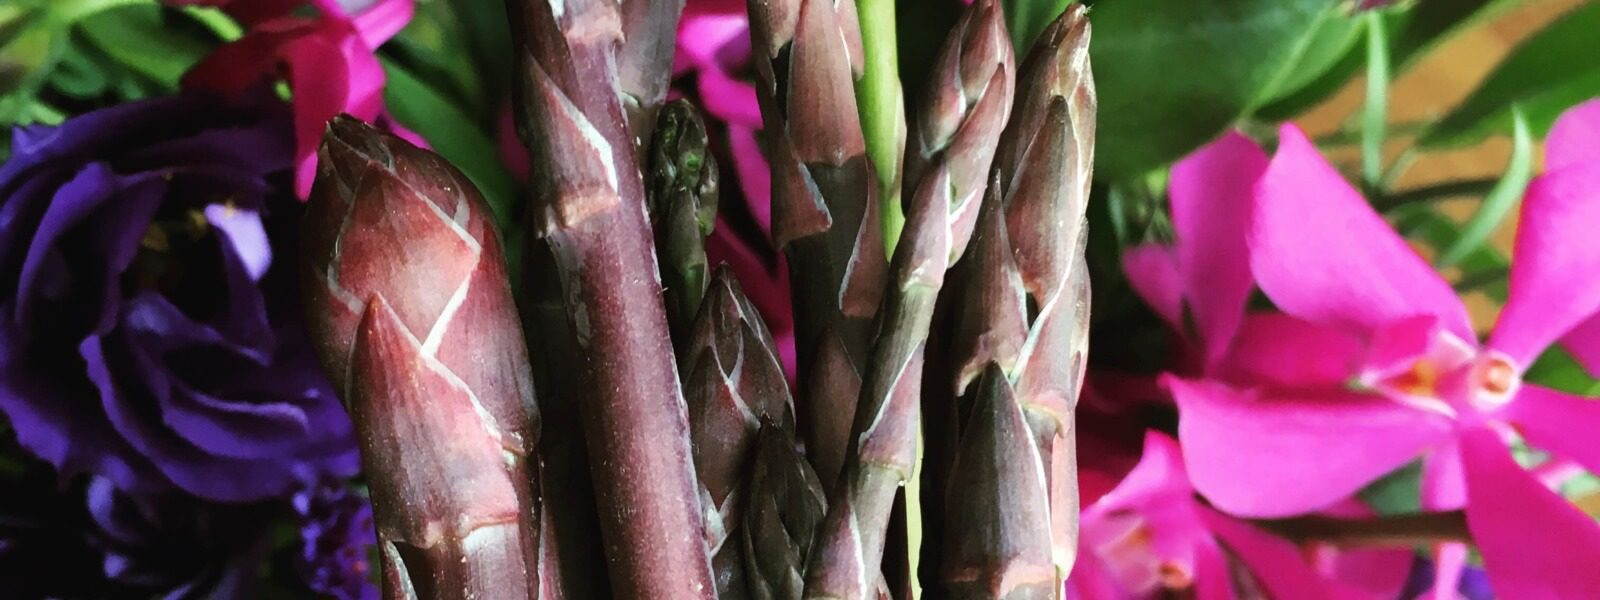 Purple asparagus and flowers.